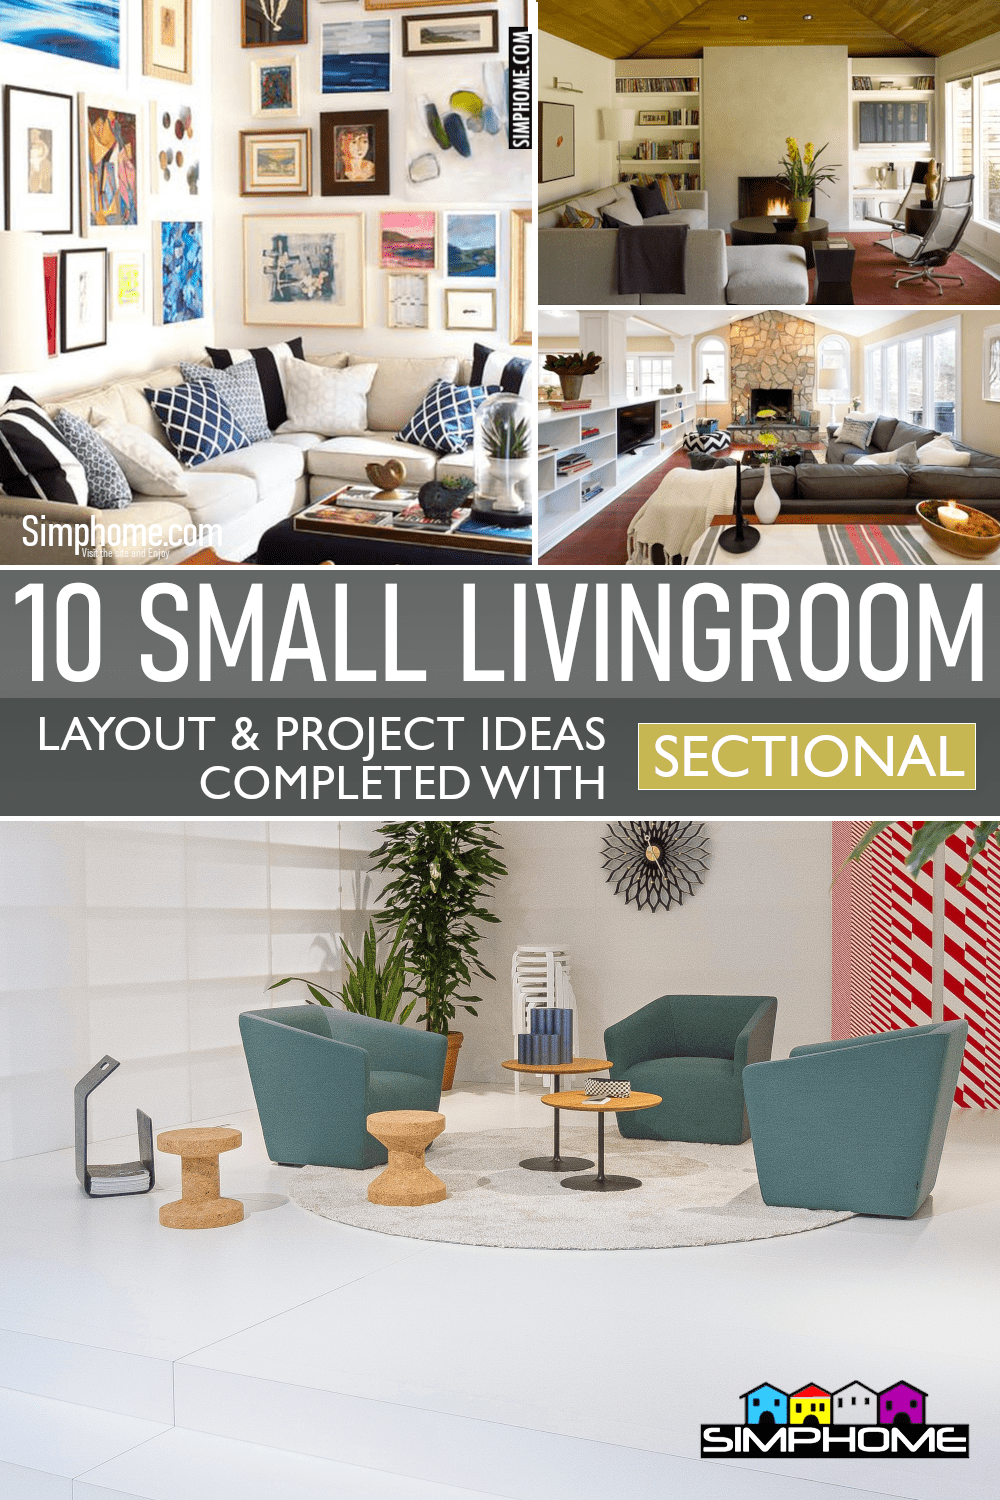 10 Small Living Room Layout with Sectional via Simphome.comFeatured